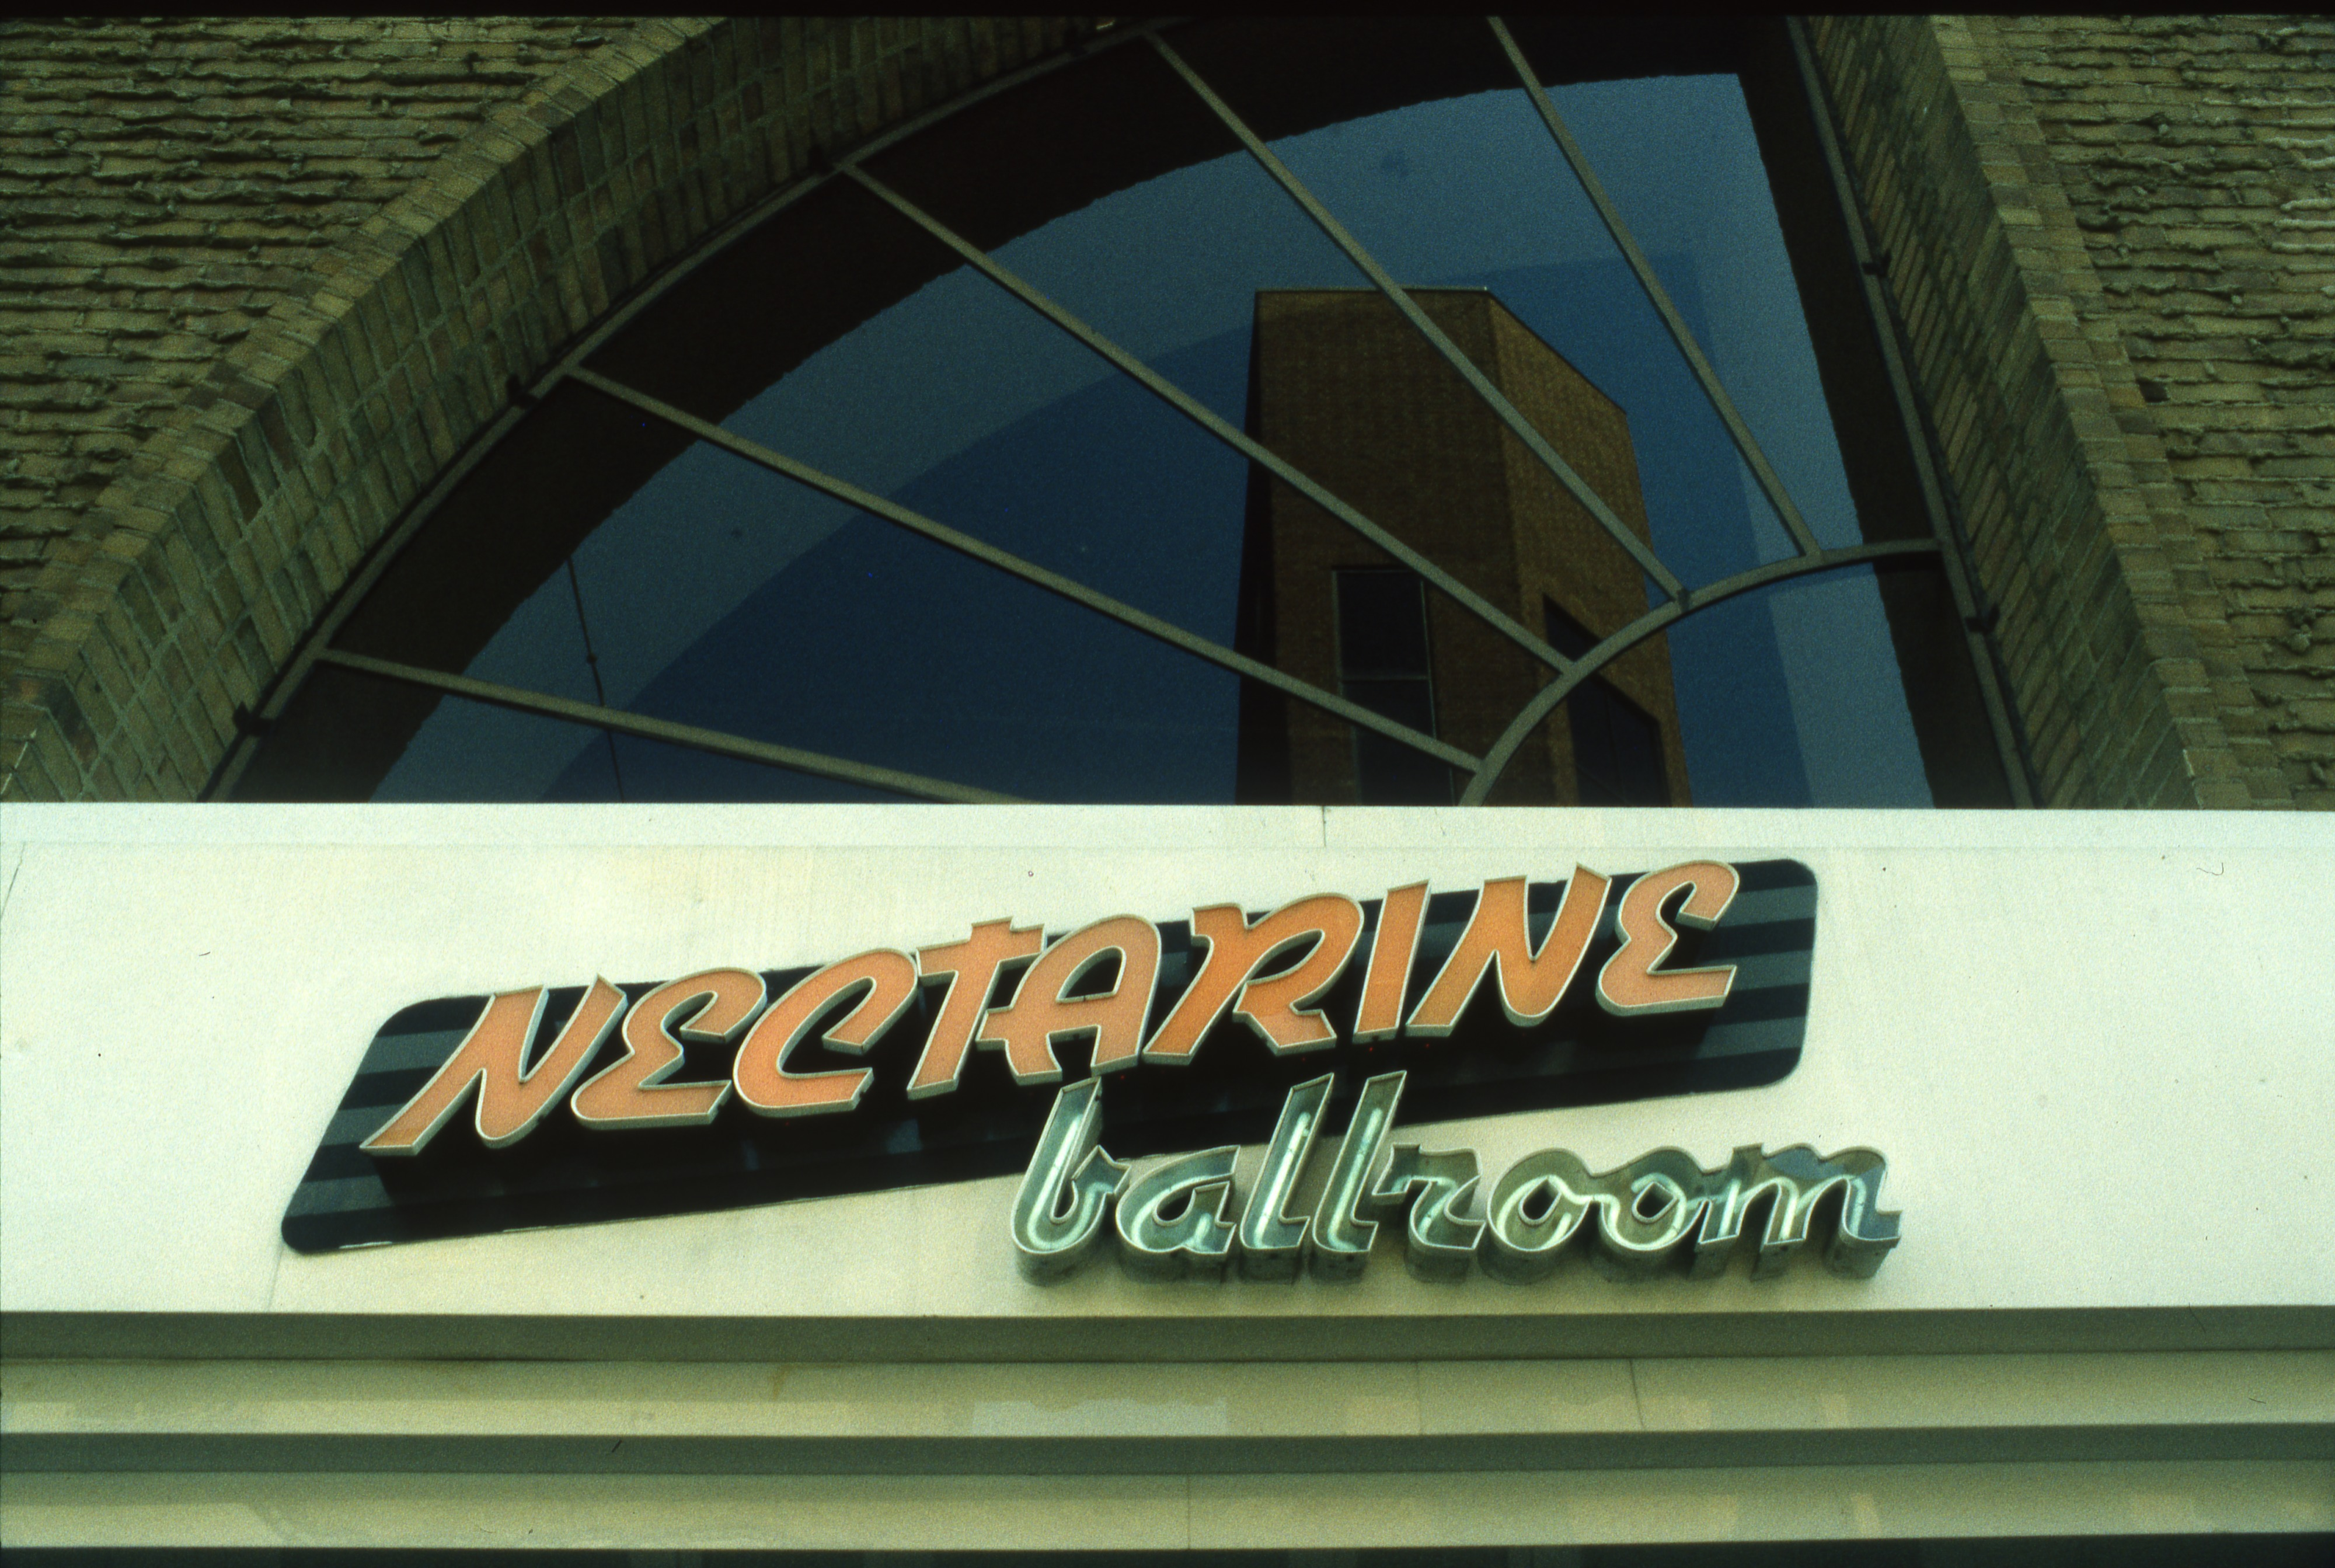 Nectarine Ballroom Sign, September 7, 1989 image